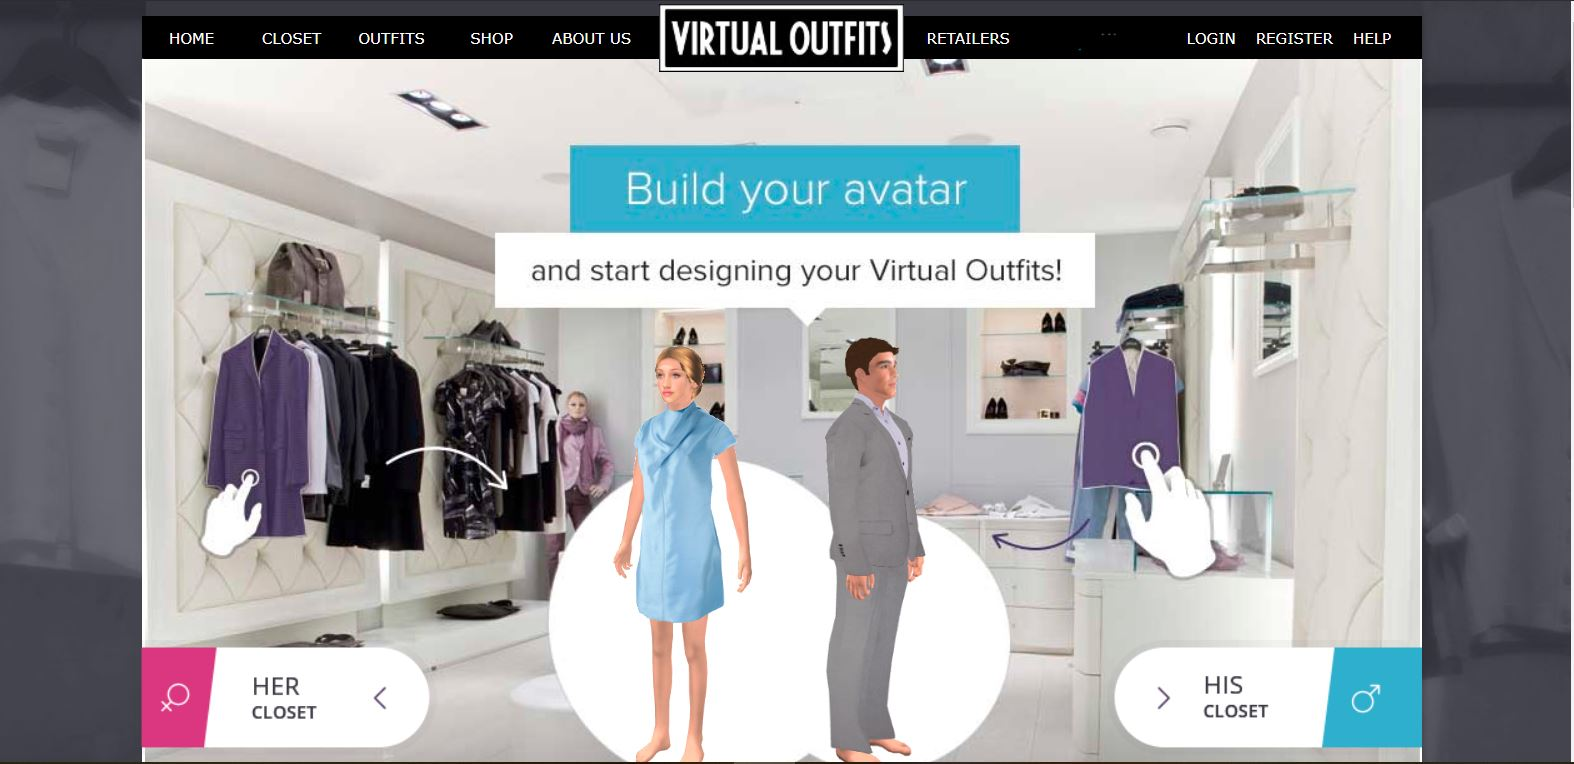 virtual outfits